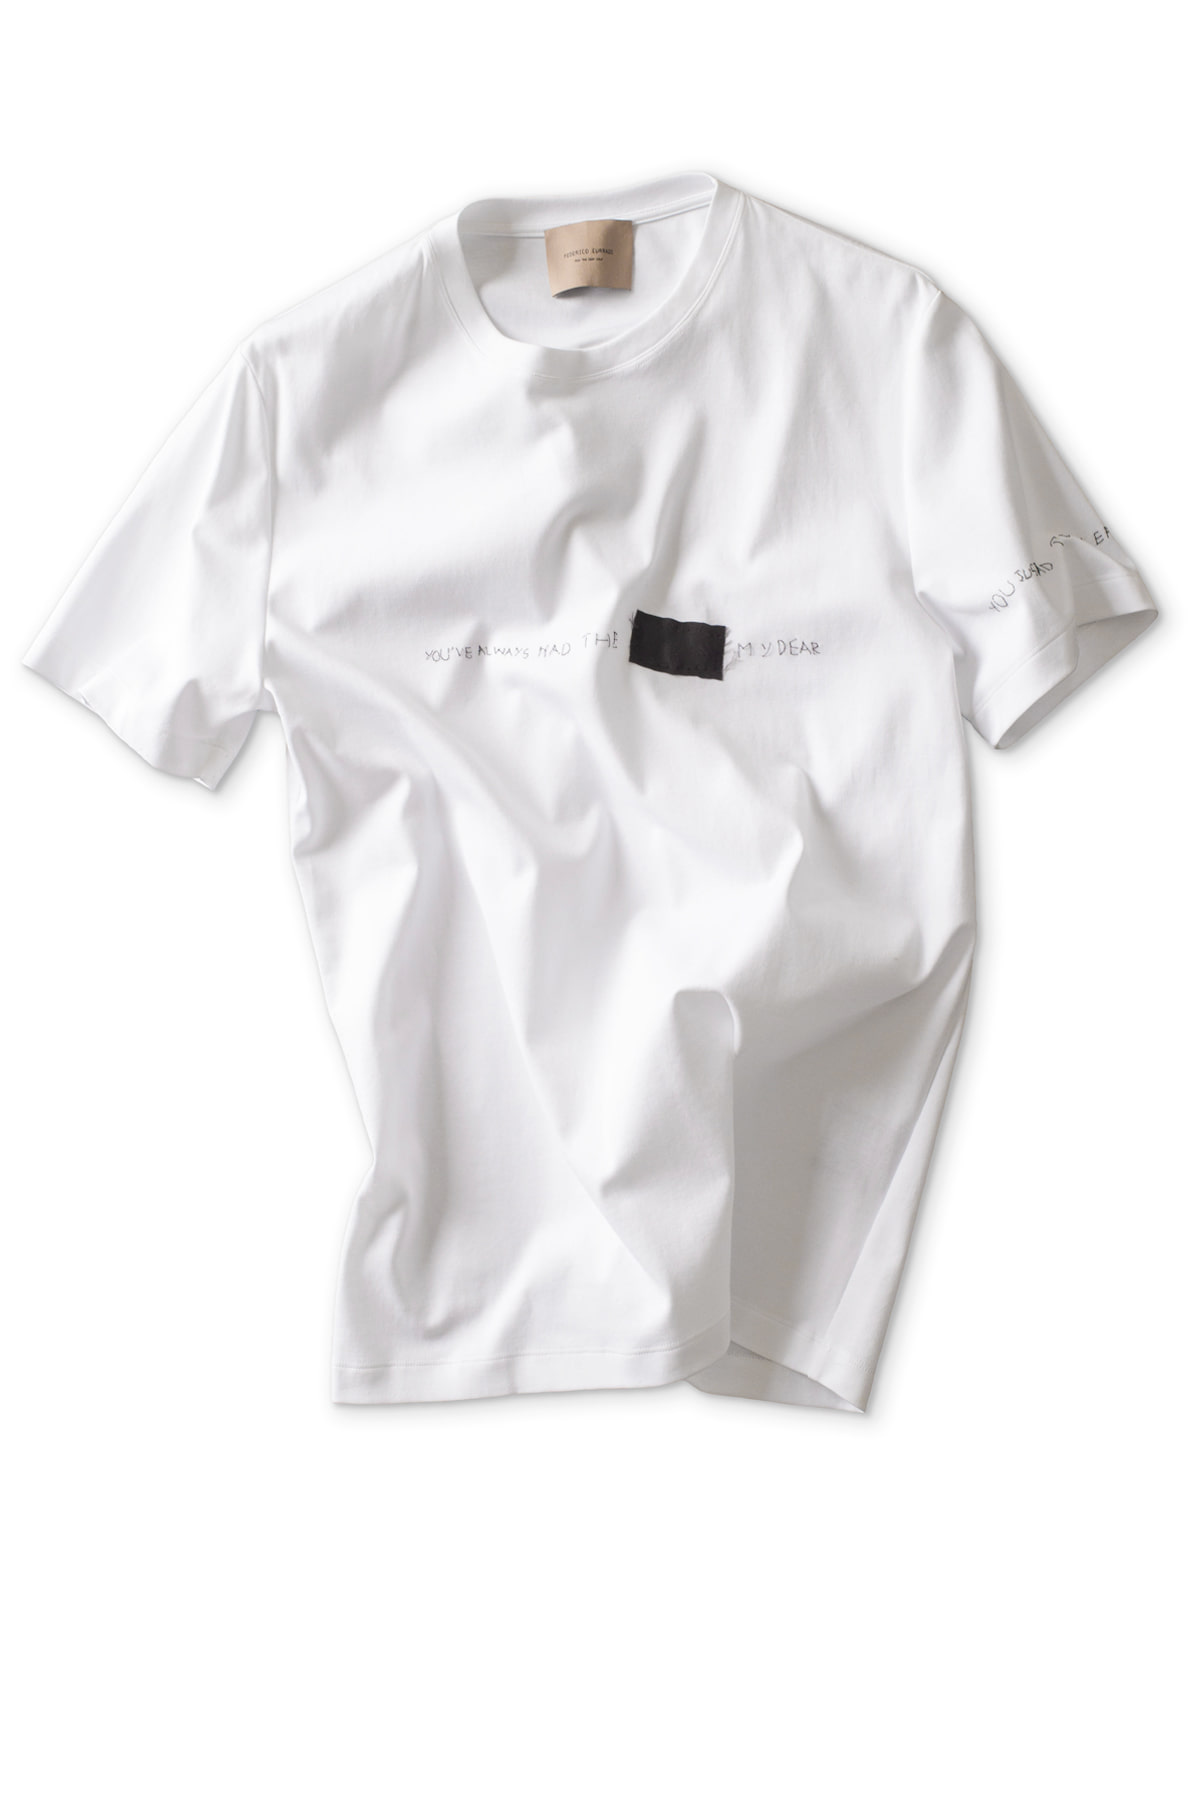 Federico Curradi : T-shirt With Embroidery Silk Patch (White)